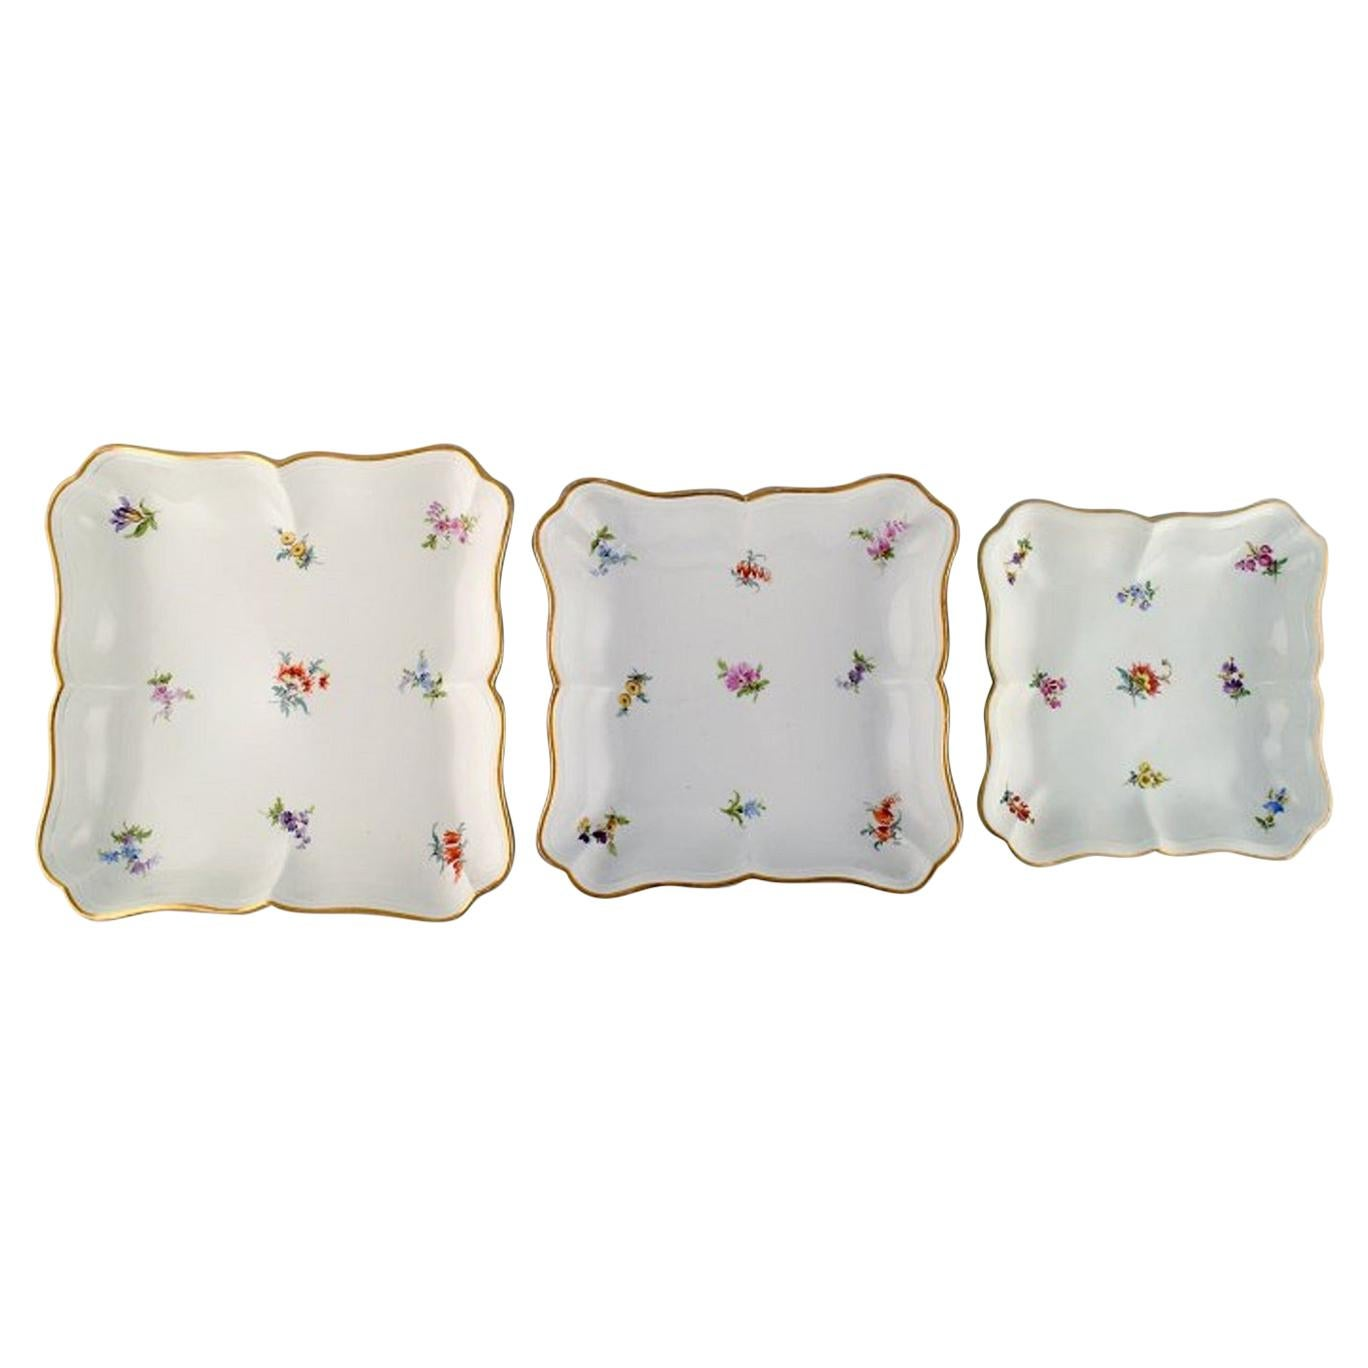 Three Antique Meissen Dishes in Hand-Painted Porcelain with Flowers